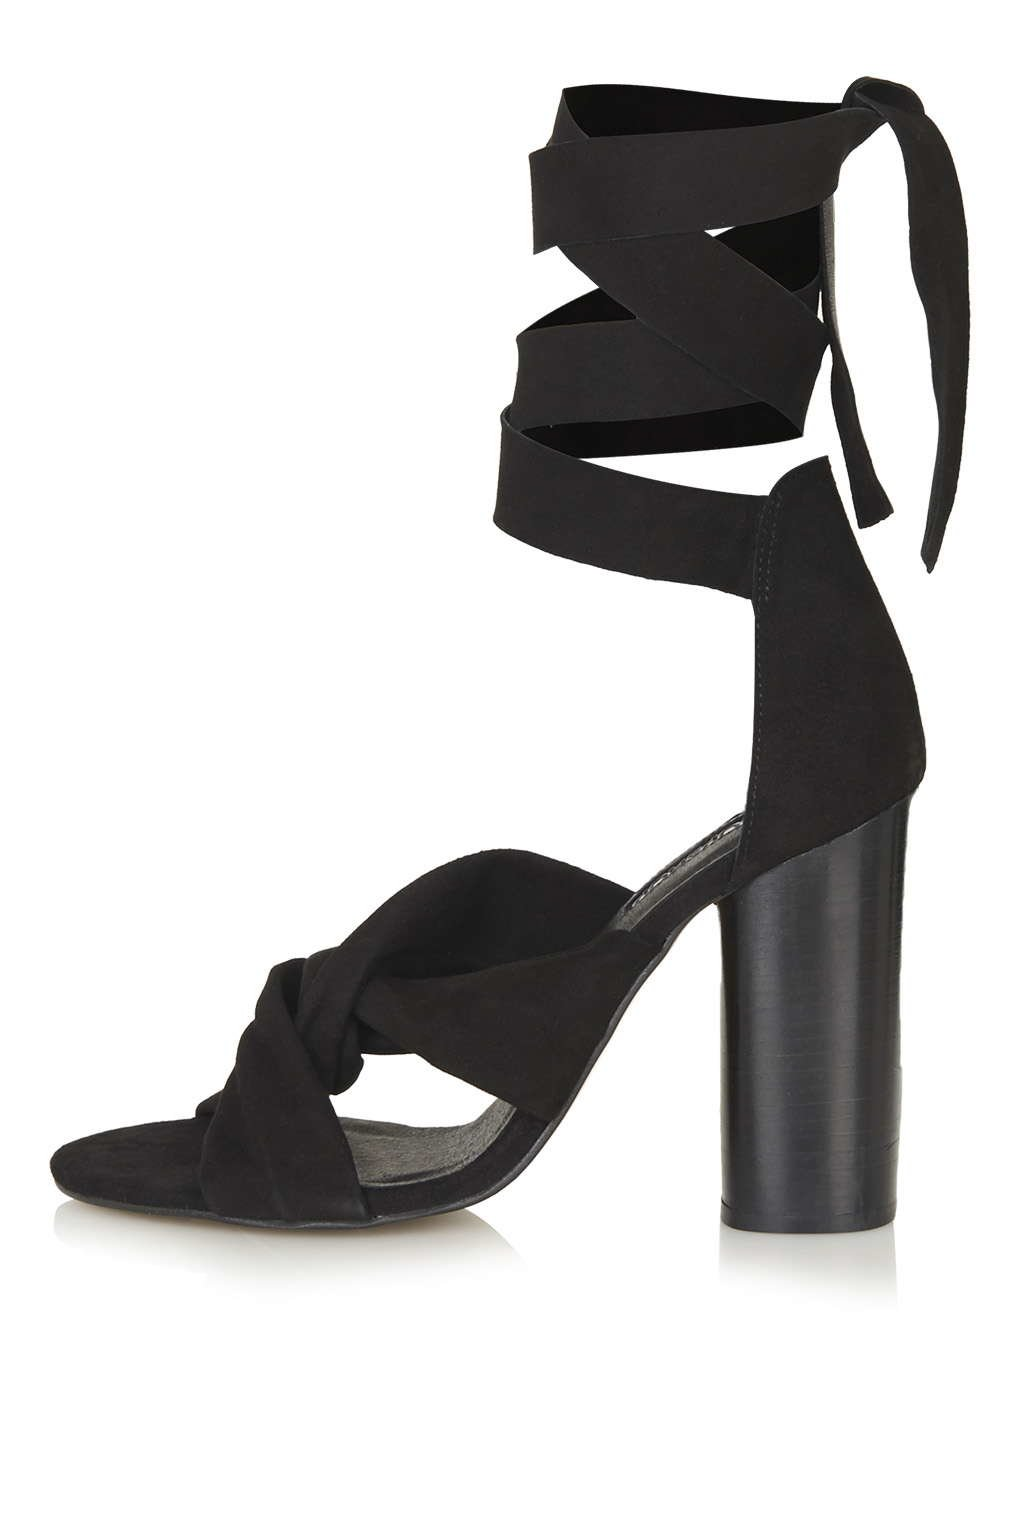 Lyst Topshop Rosa Suede Knot High Sandals In Black